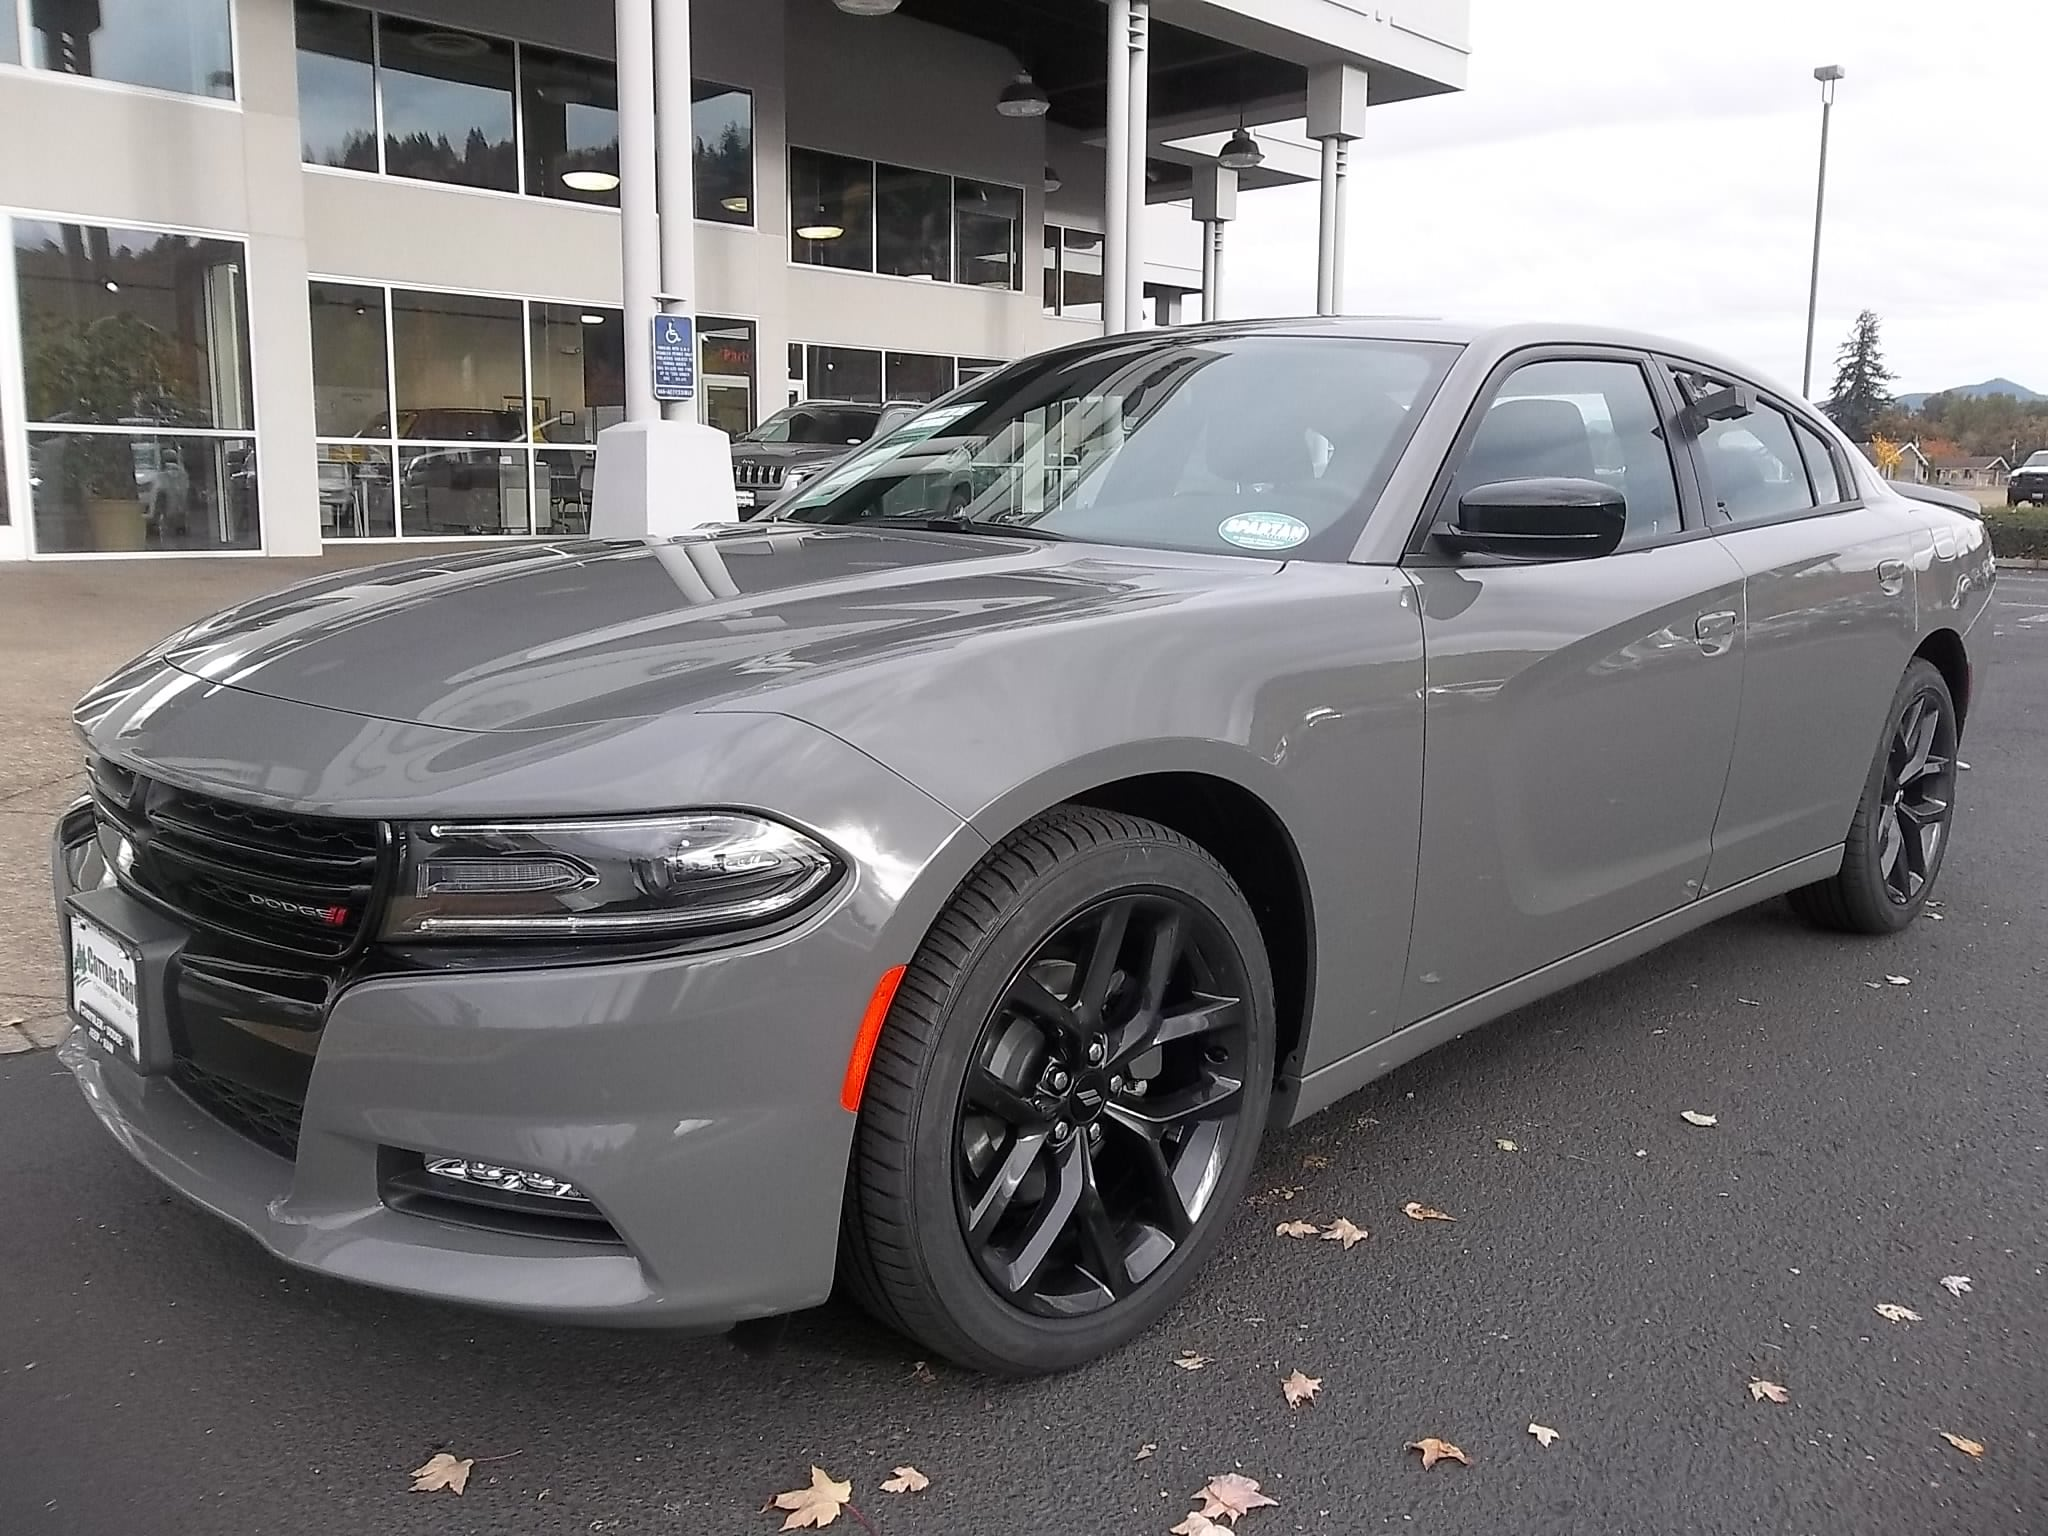 Used 2019 Dodge Charger Sxt For Sale In Cottage Grove Or Near Springfield Or Vin 2c3cdxbg3kh510849